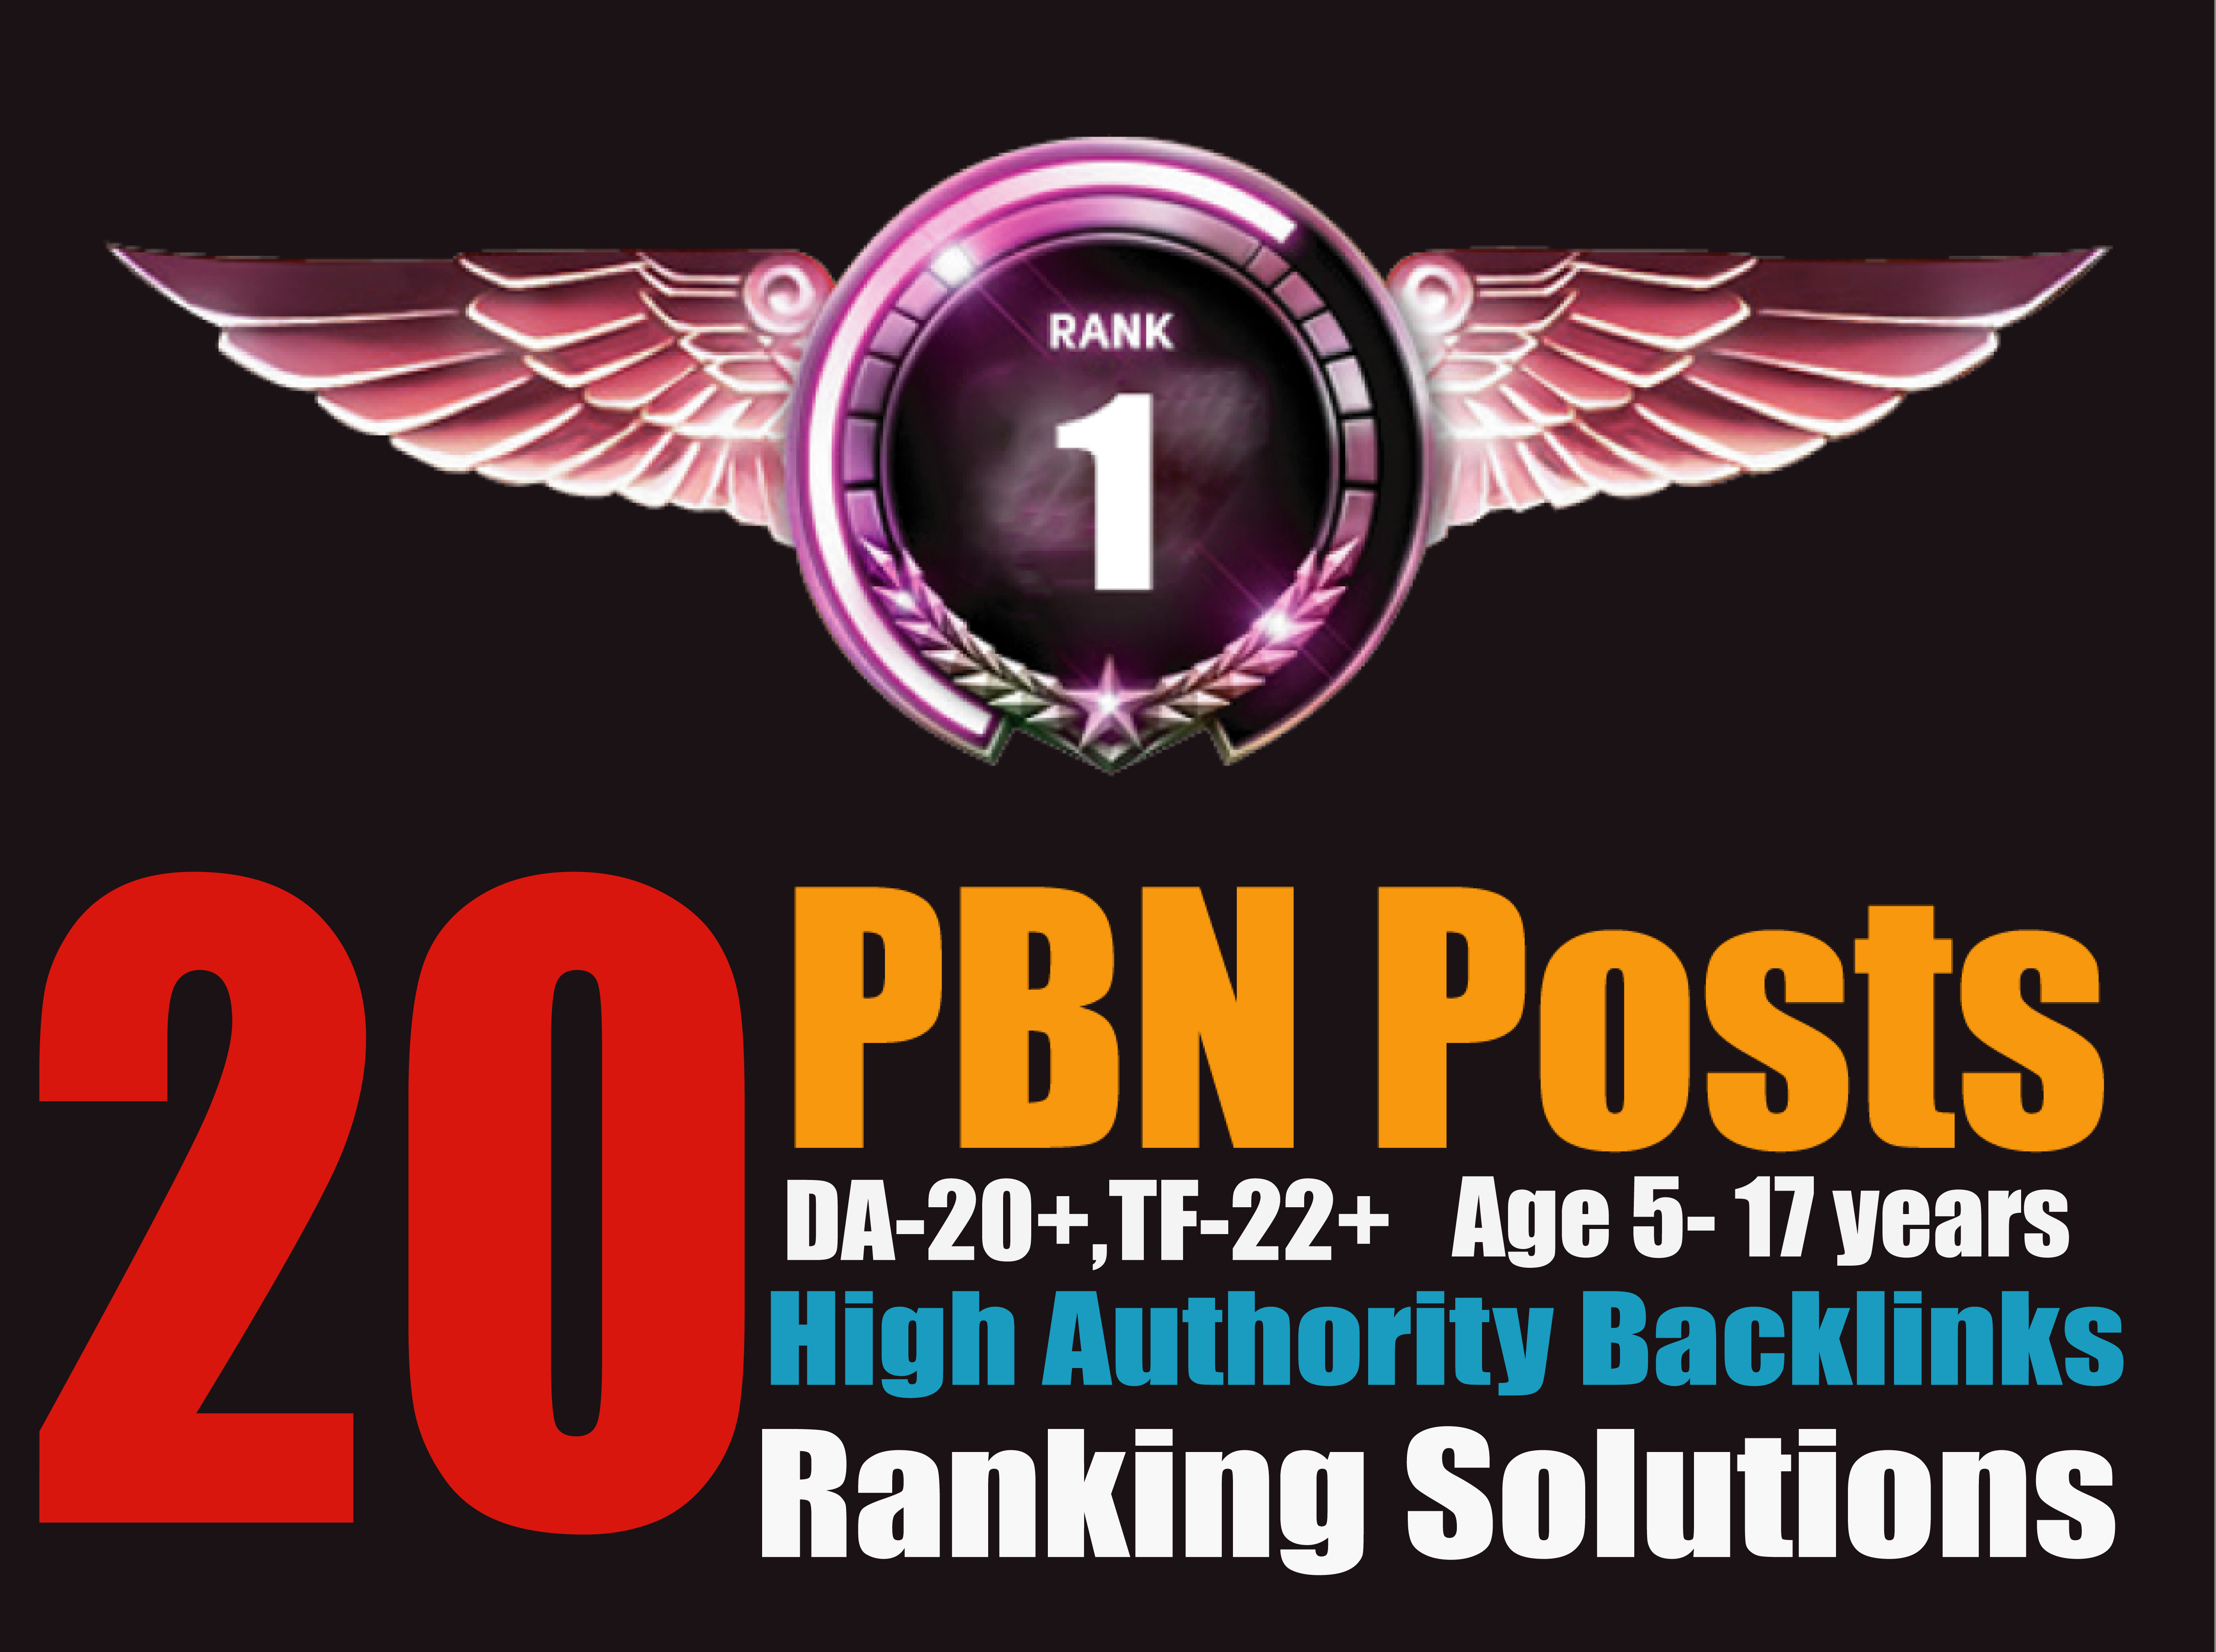 Ranking Solutions - 20 PBN Posts DA26+TF26+